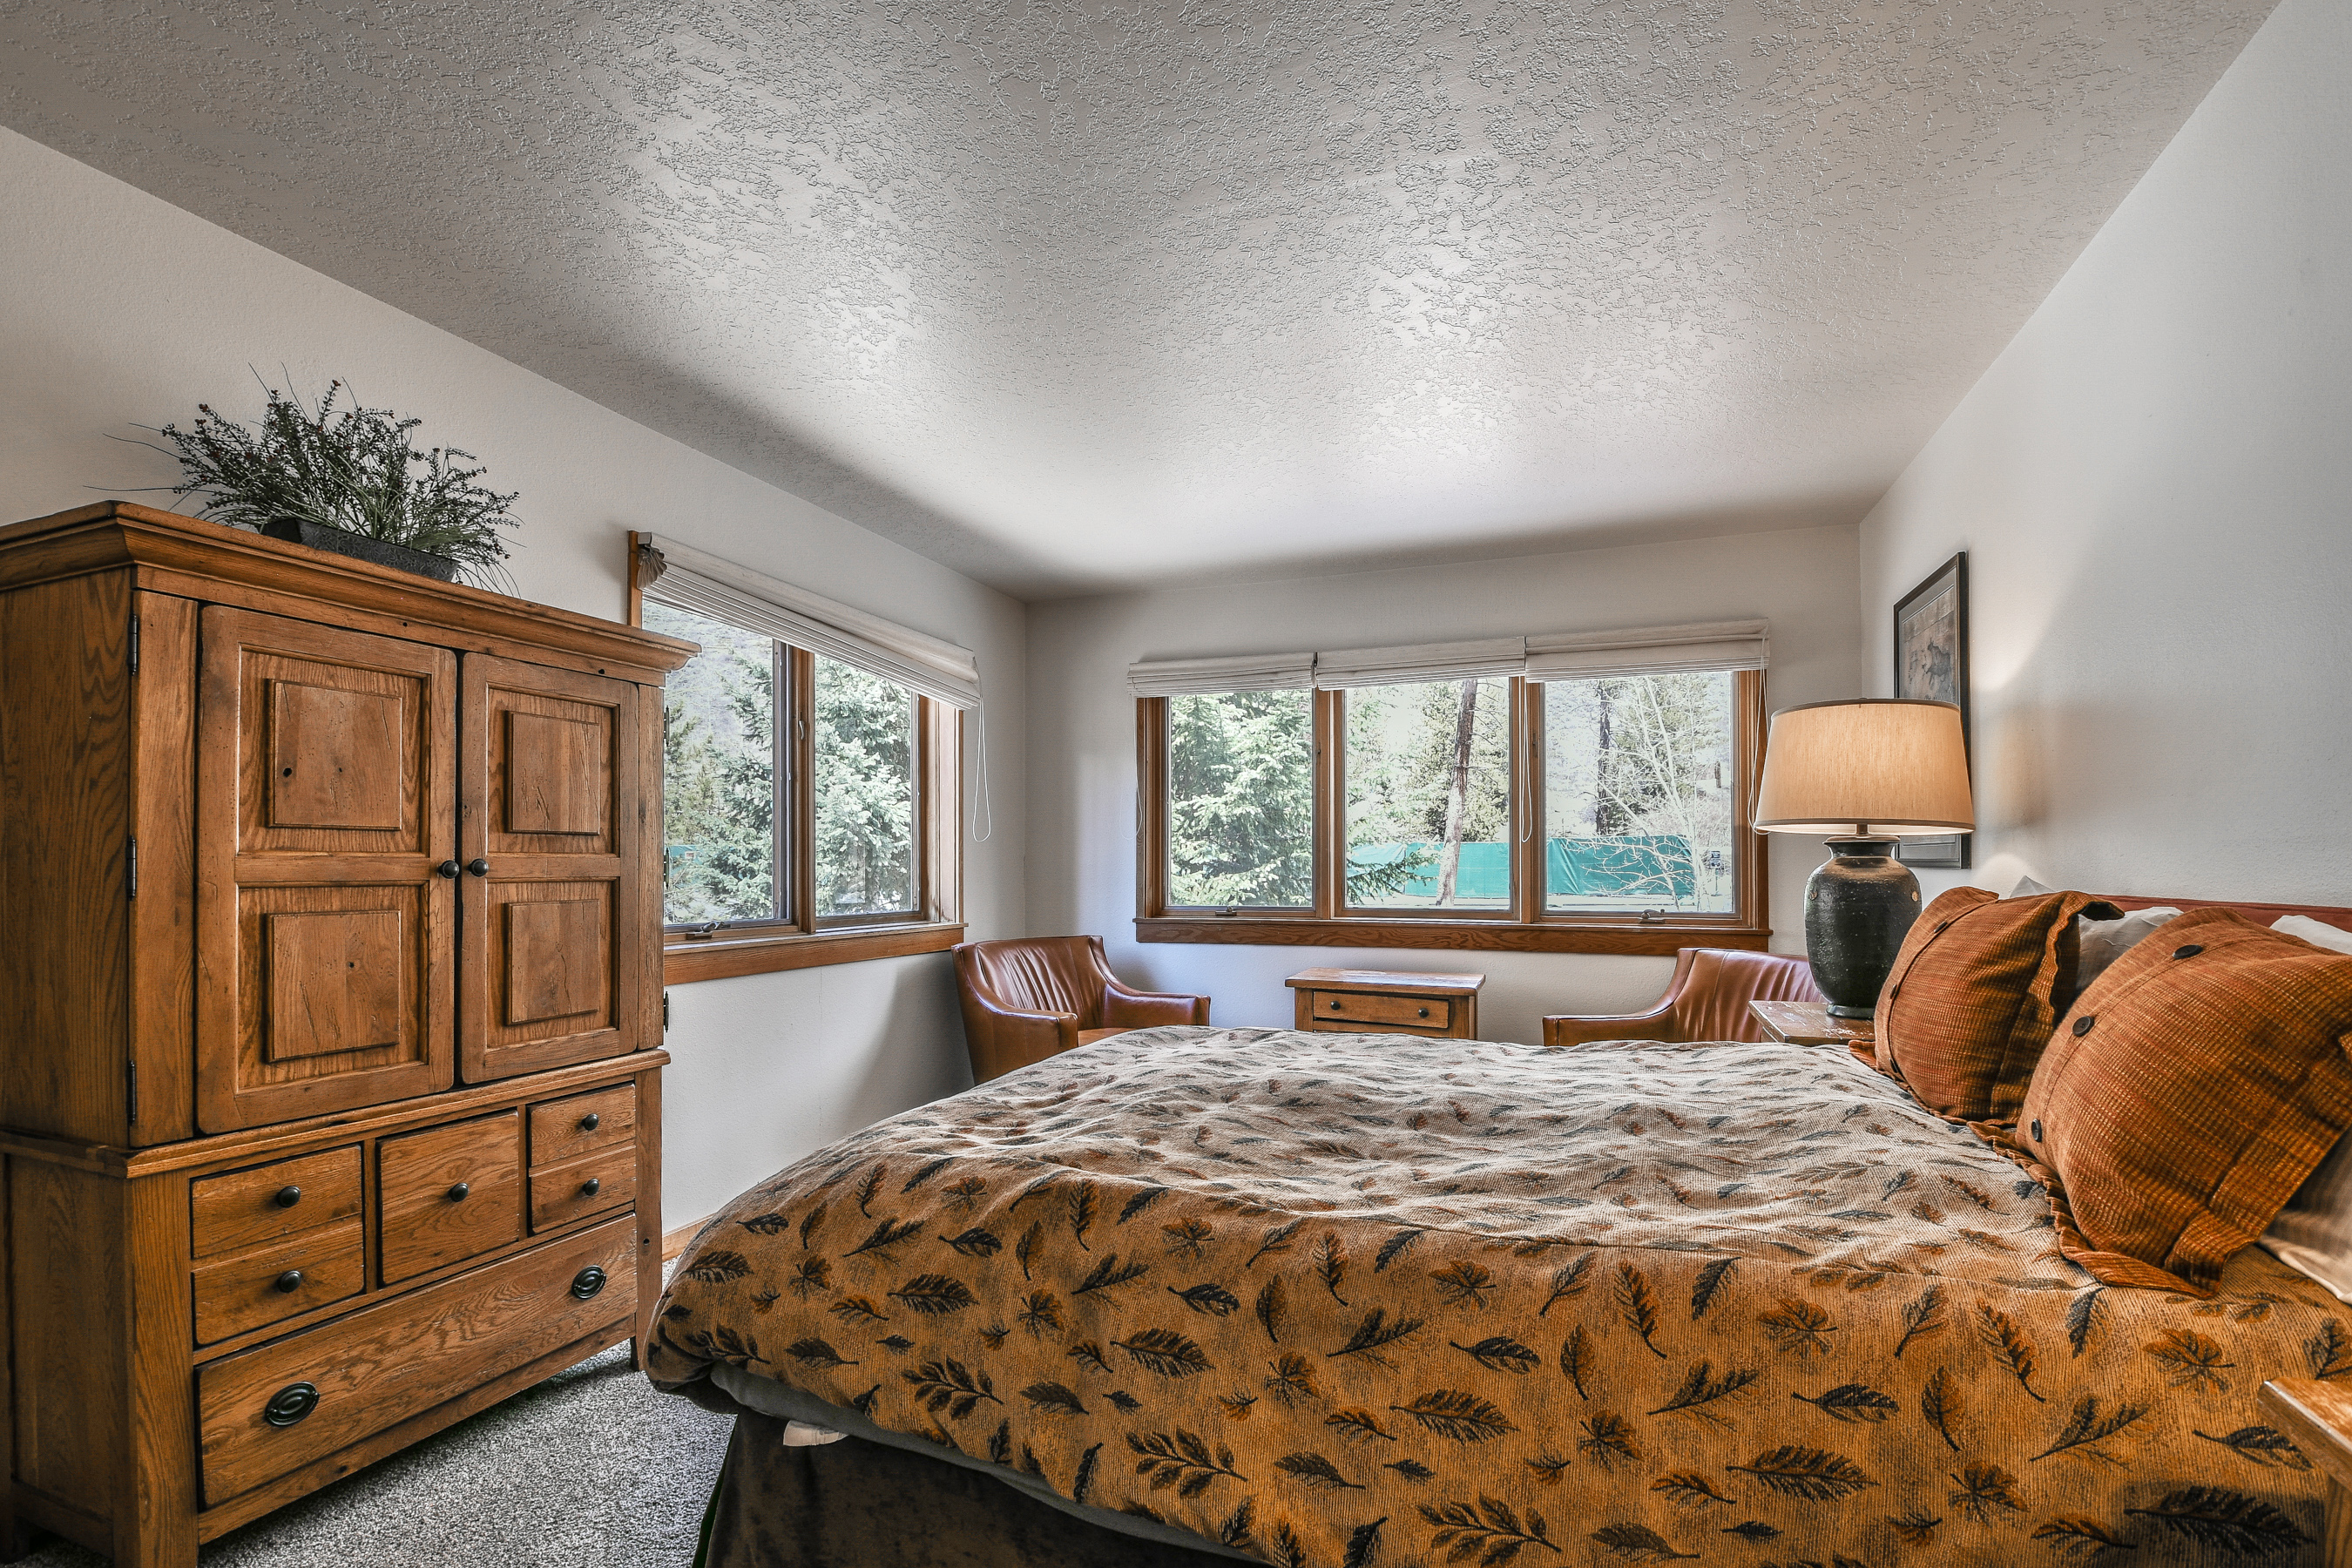 Bedroom with an amazing forest view